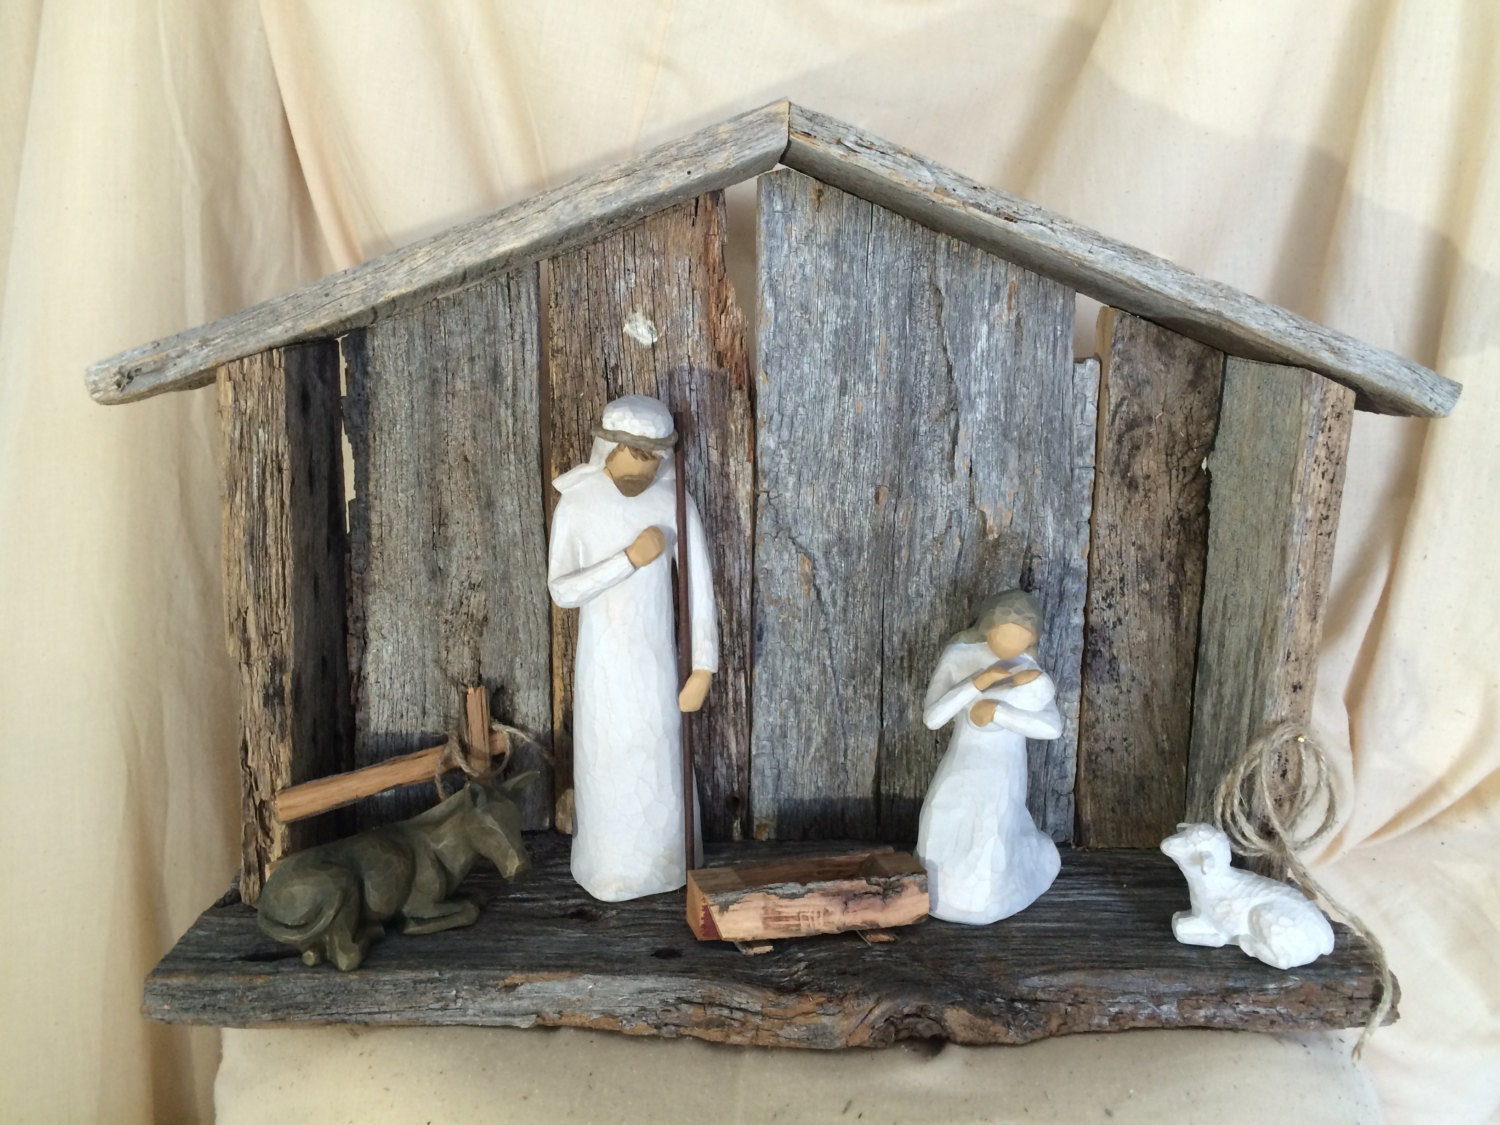 Hand Crafted Nativity Stable Made From 100 Year Old Barn Wood